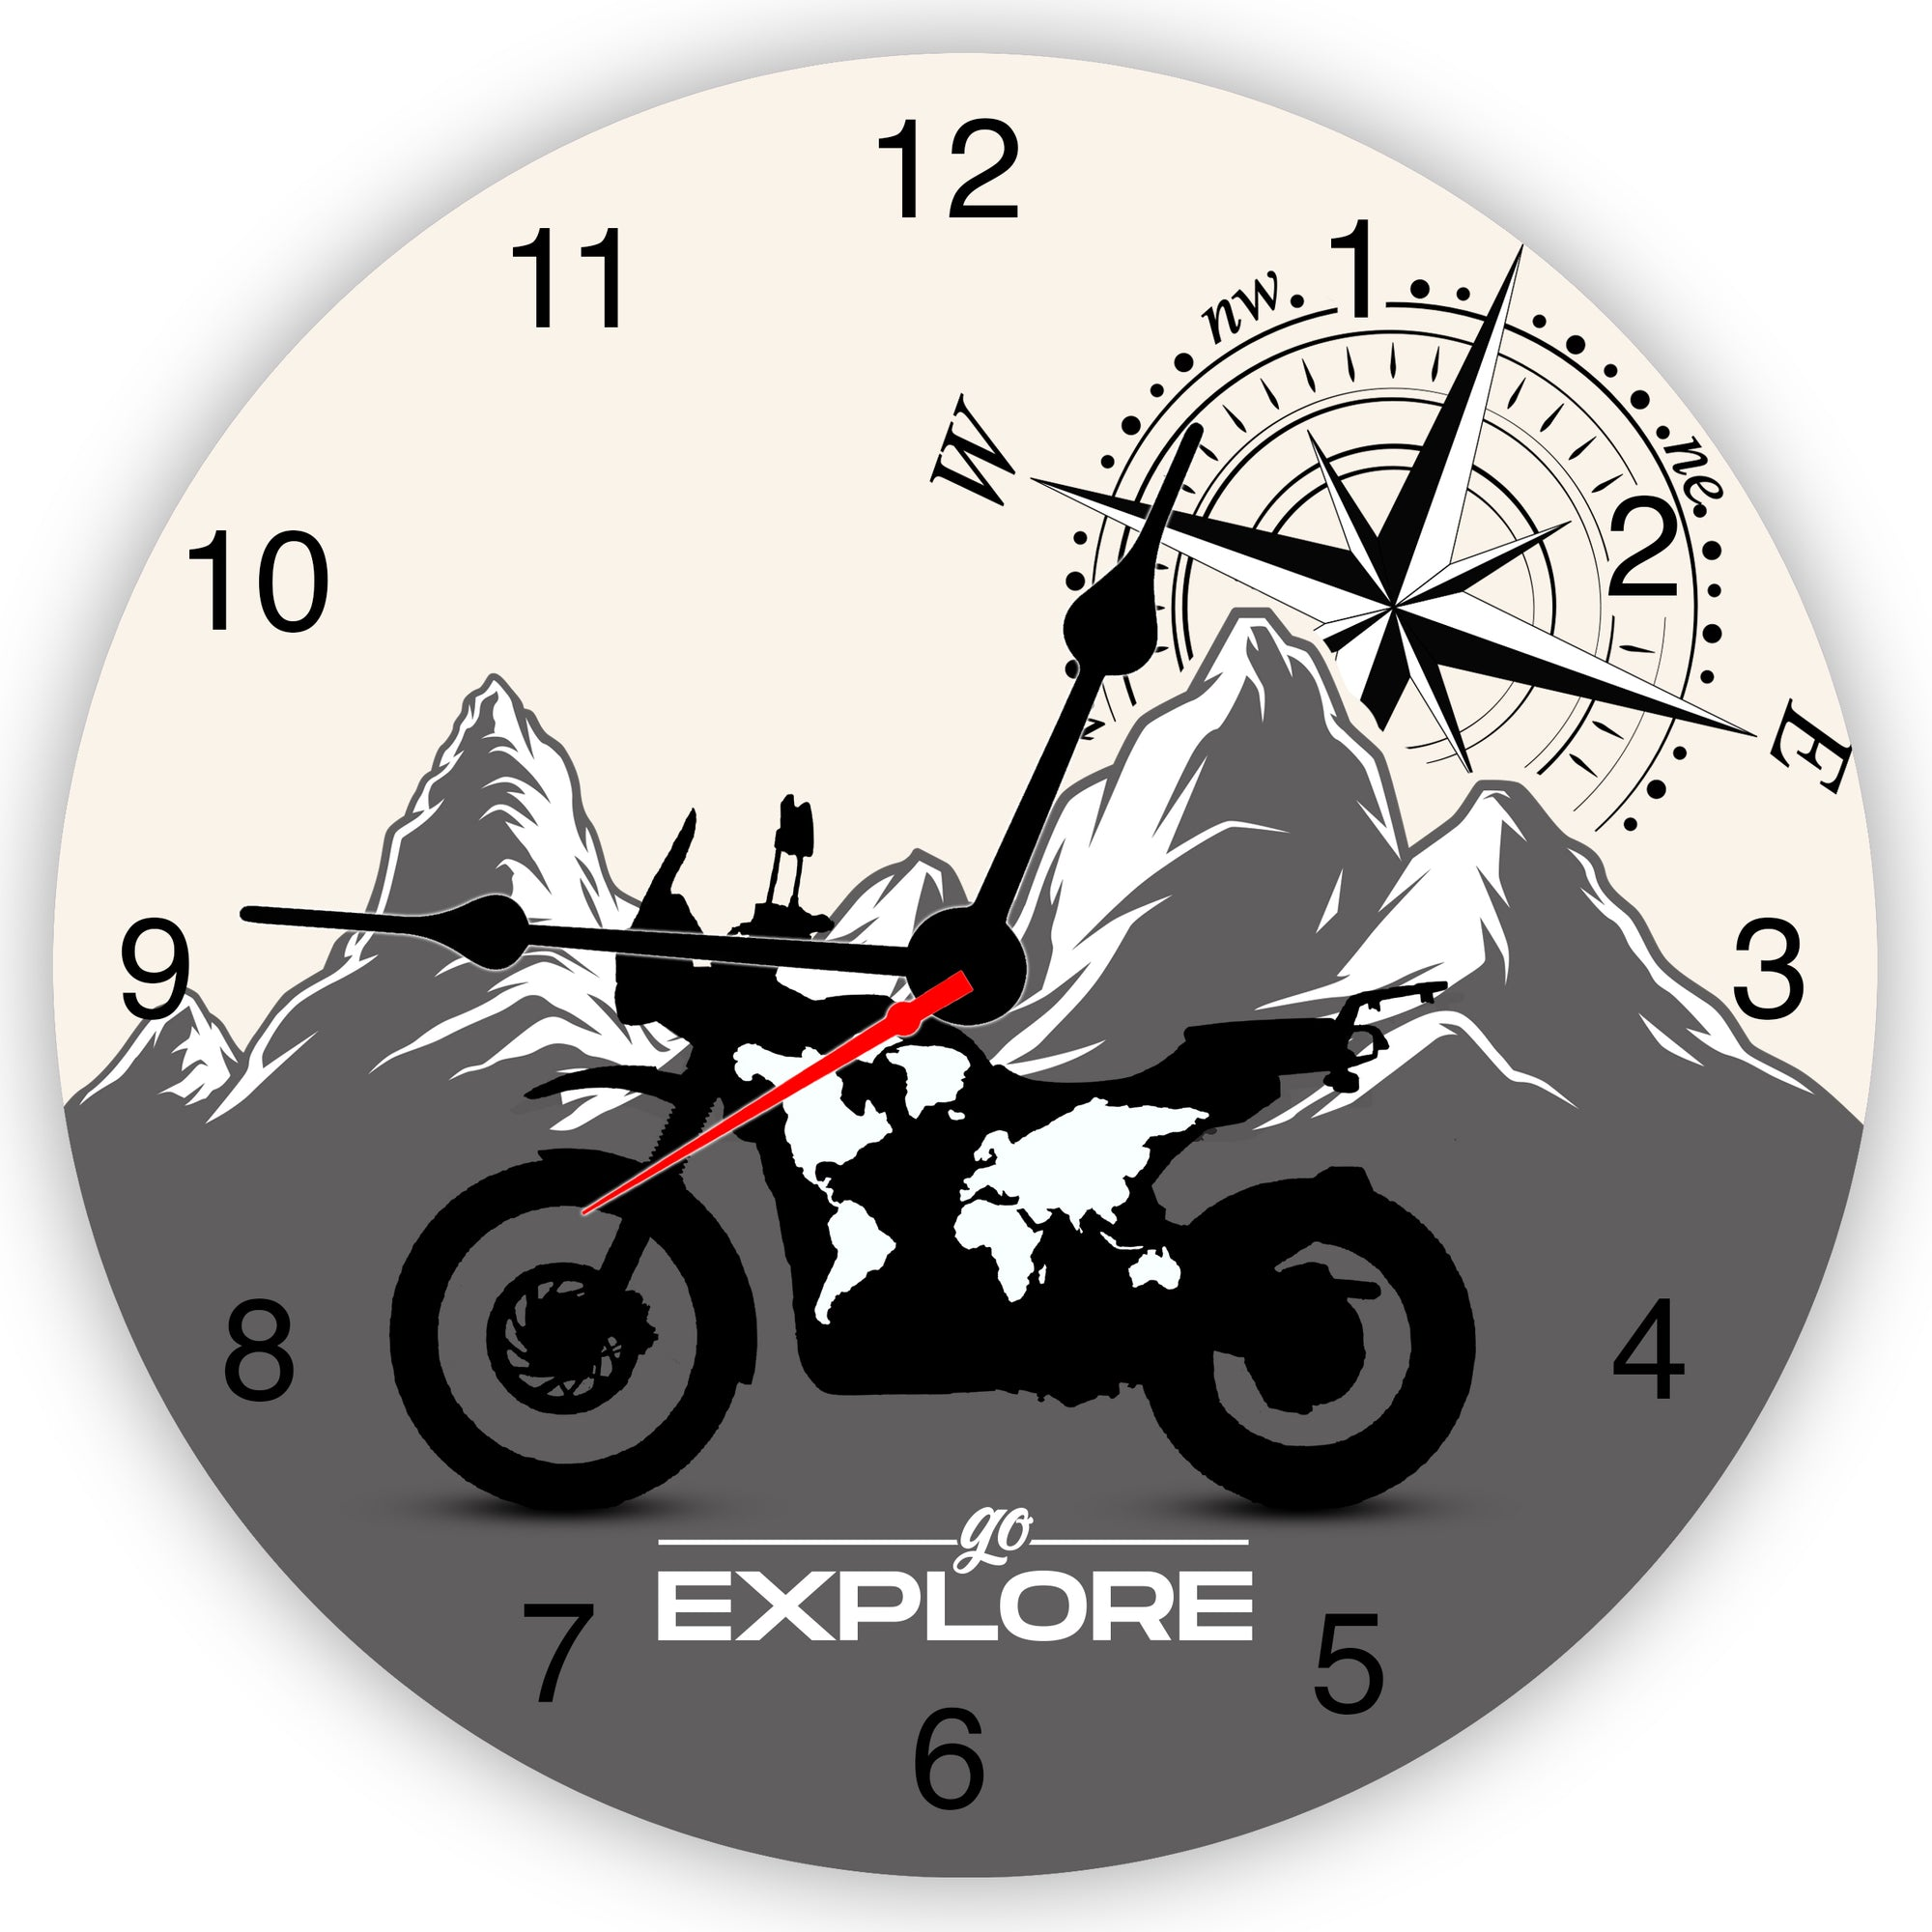 Go Explore Wall Clock